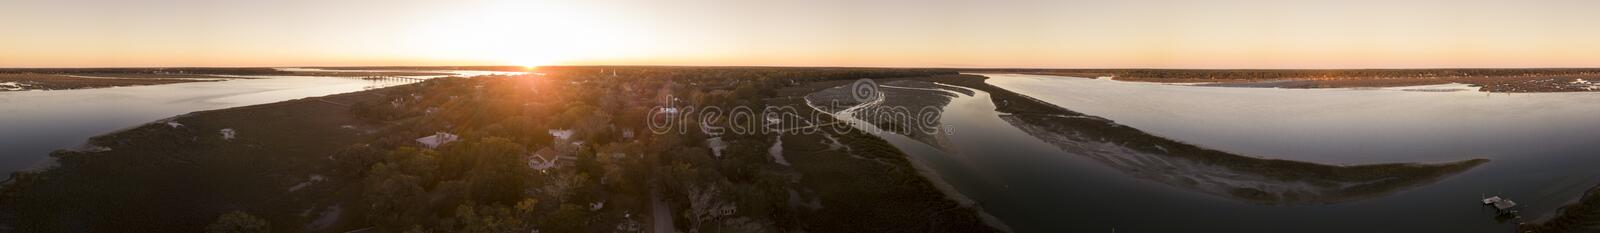 Seamless 360 degree panorama of town and river at sunset, Beaufort, South Carolina. royalty free stock photography